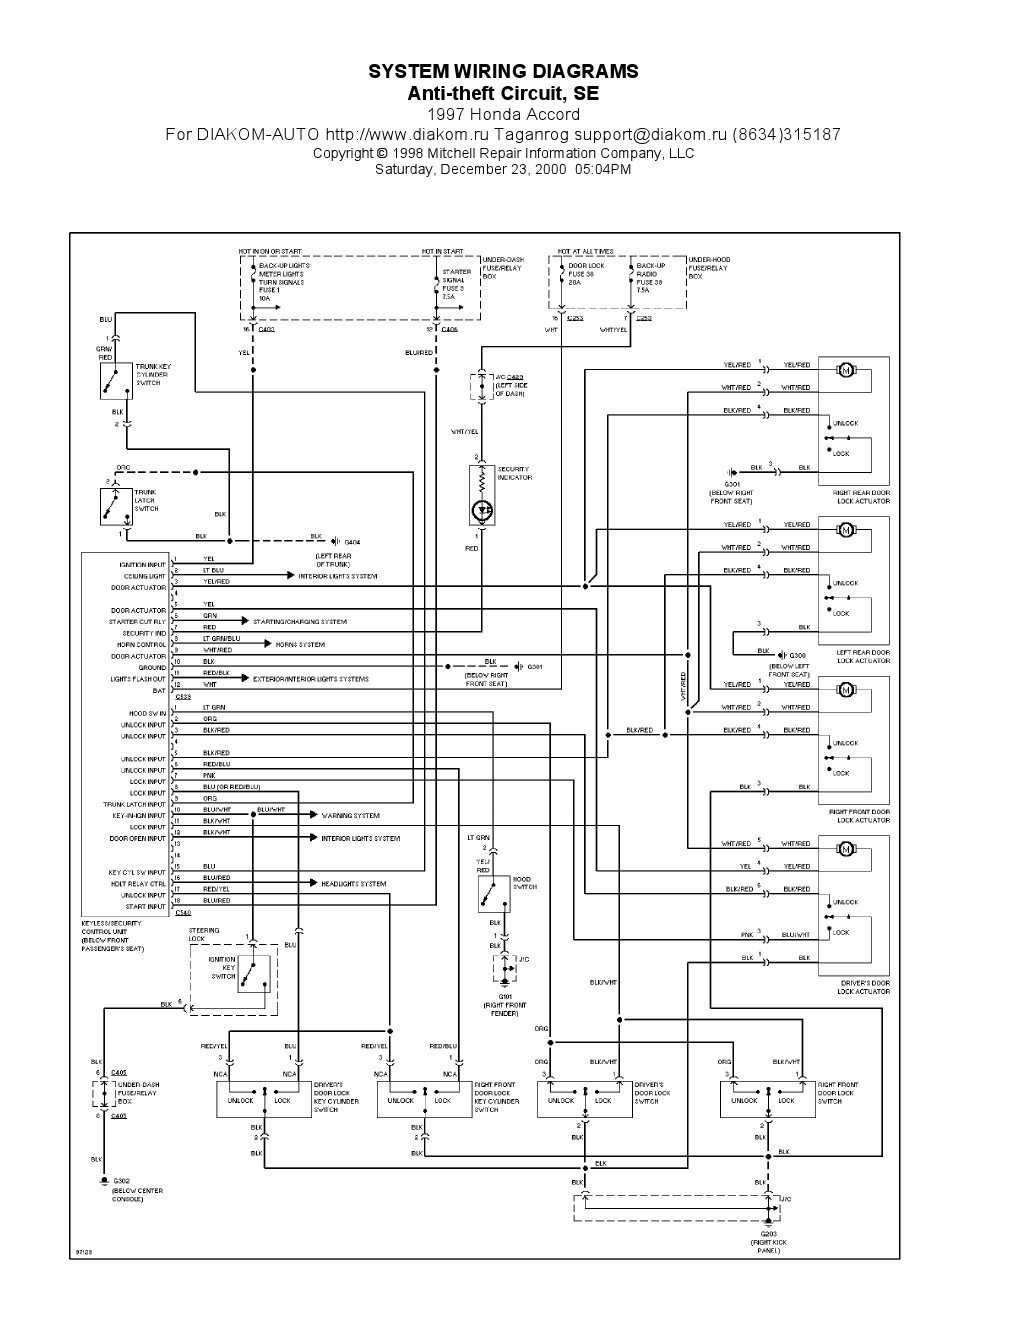 97 accord wiring diagram wiring diagram explained 97 accord sedan 97 accord wire diagram [ 1020 x 1320 Pixel ]